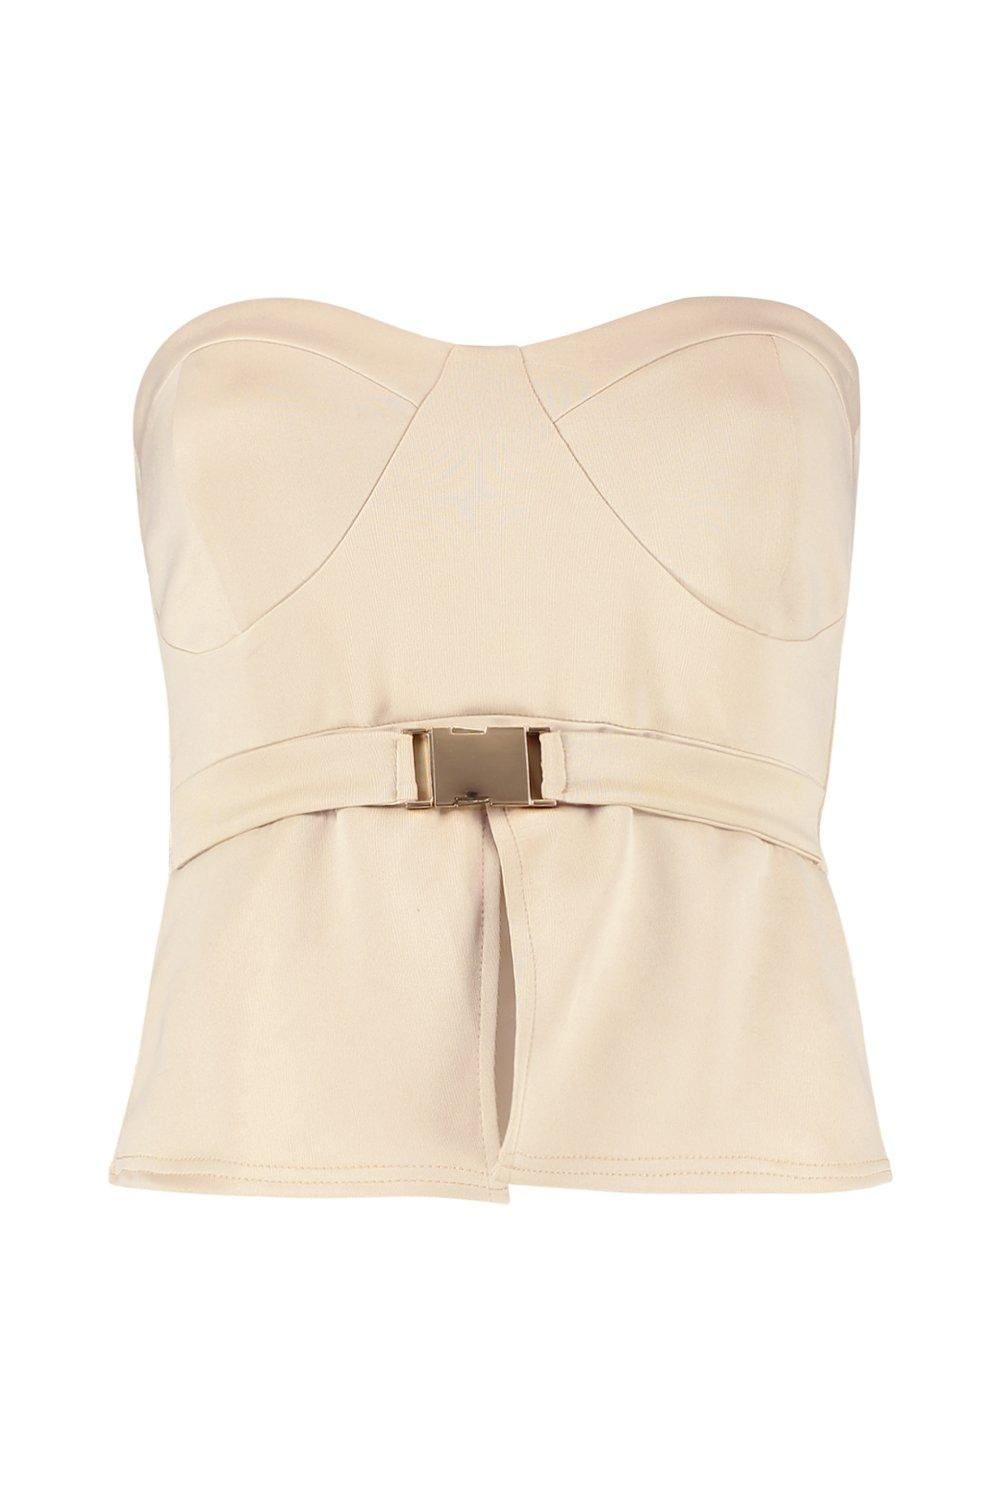 Top Detail Buckle Peplum Detail stone Peplum Buckle Top dvqPwBYYT